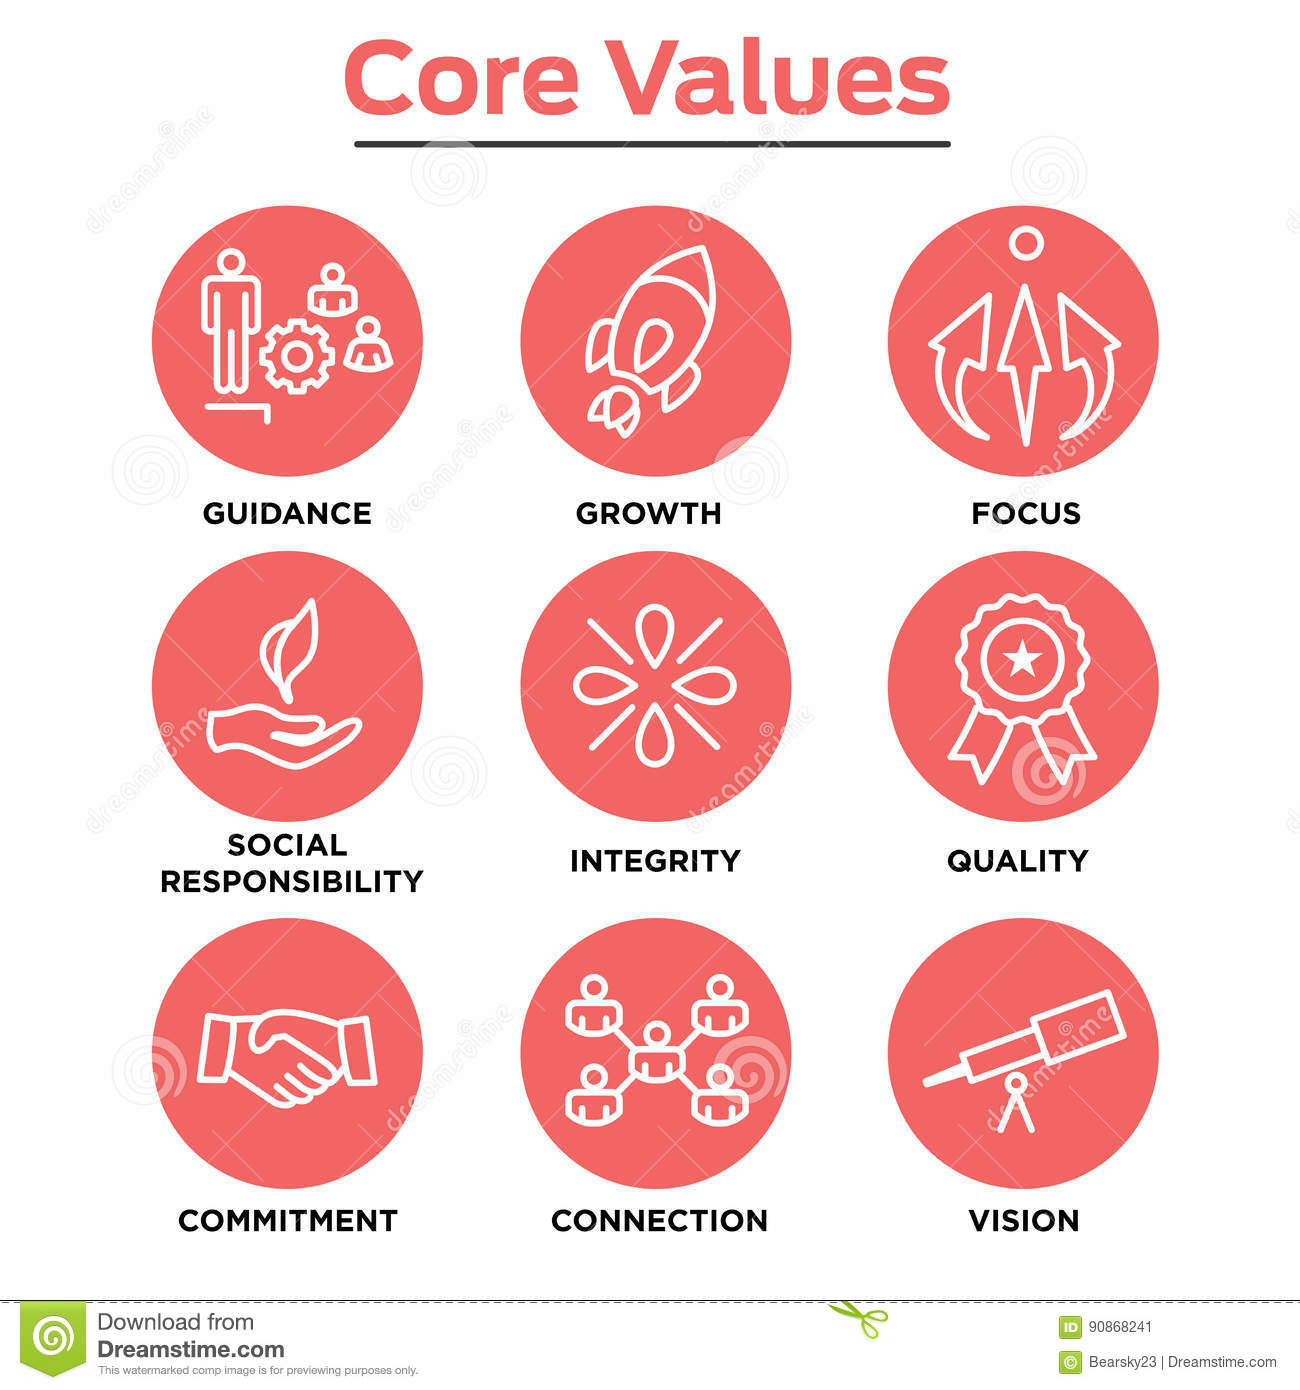 Core Values Icons Stock Illustrations 478 Core Values Icons Stock Illustrations Vectors Clipart Dreamstime